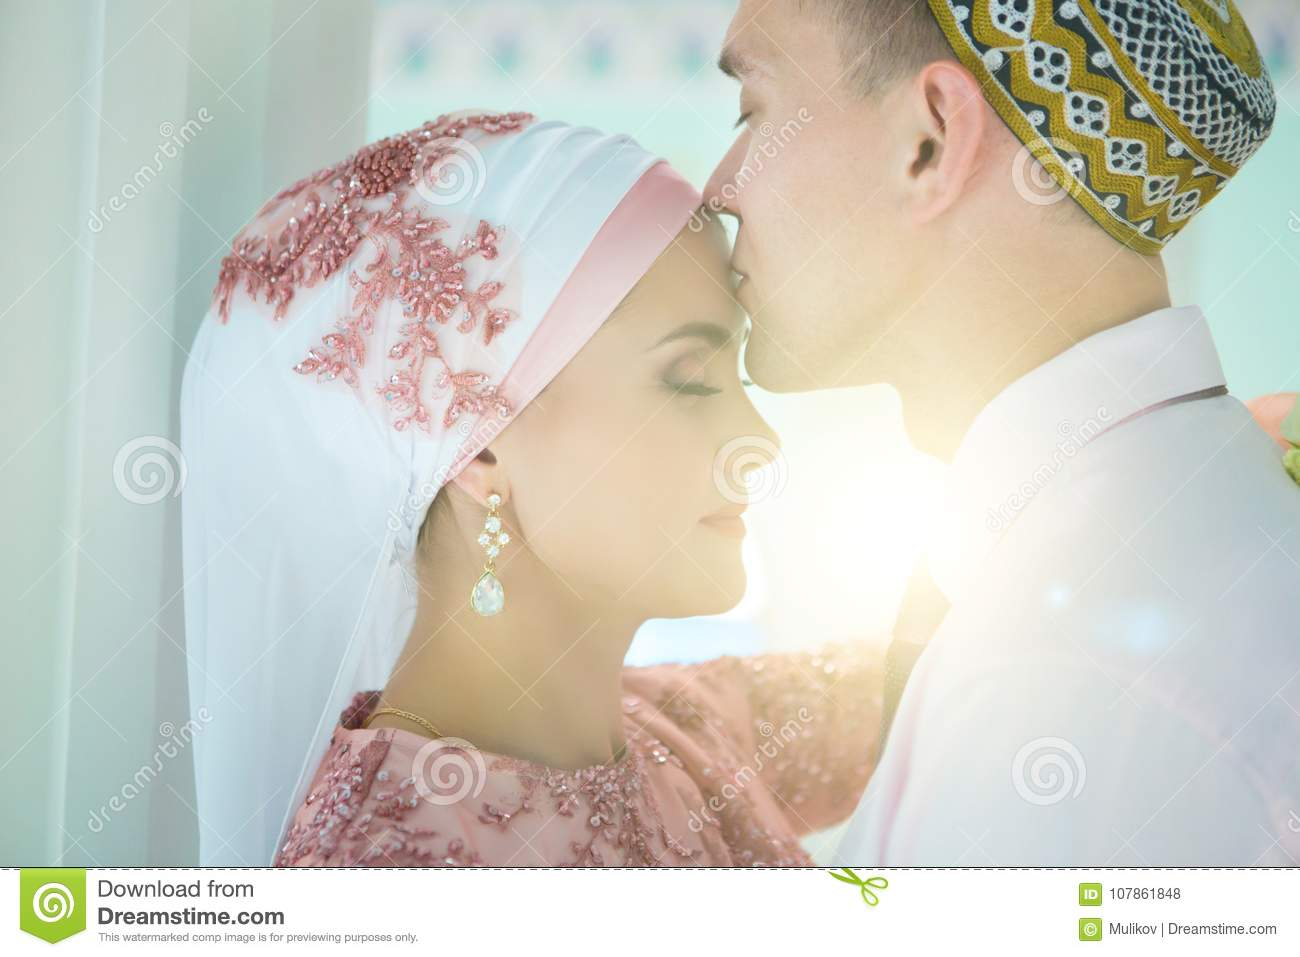 the real beauty of islam nikah marriage